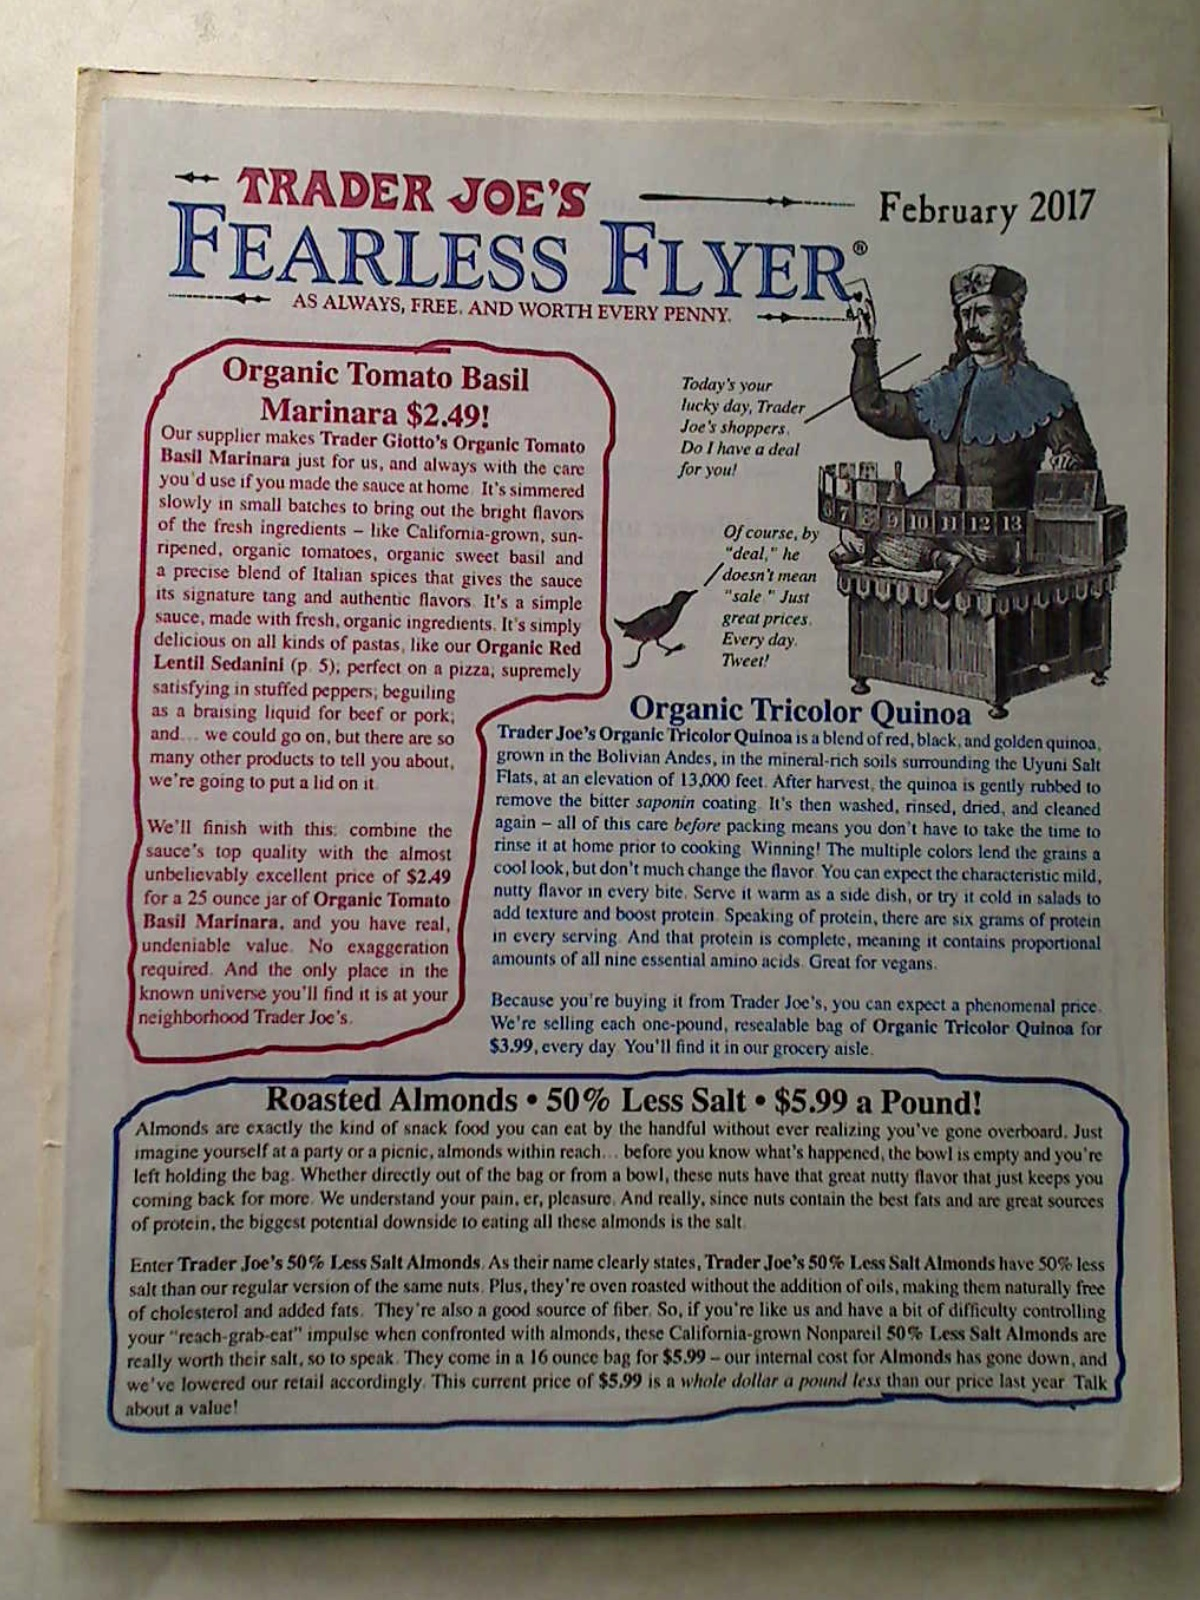 Trader Joe's Fearless Flyer. February 2017. CA/AZ Edition.